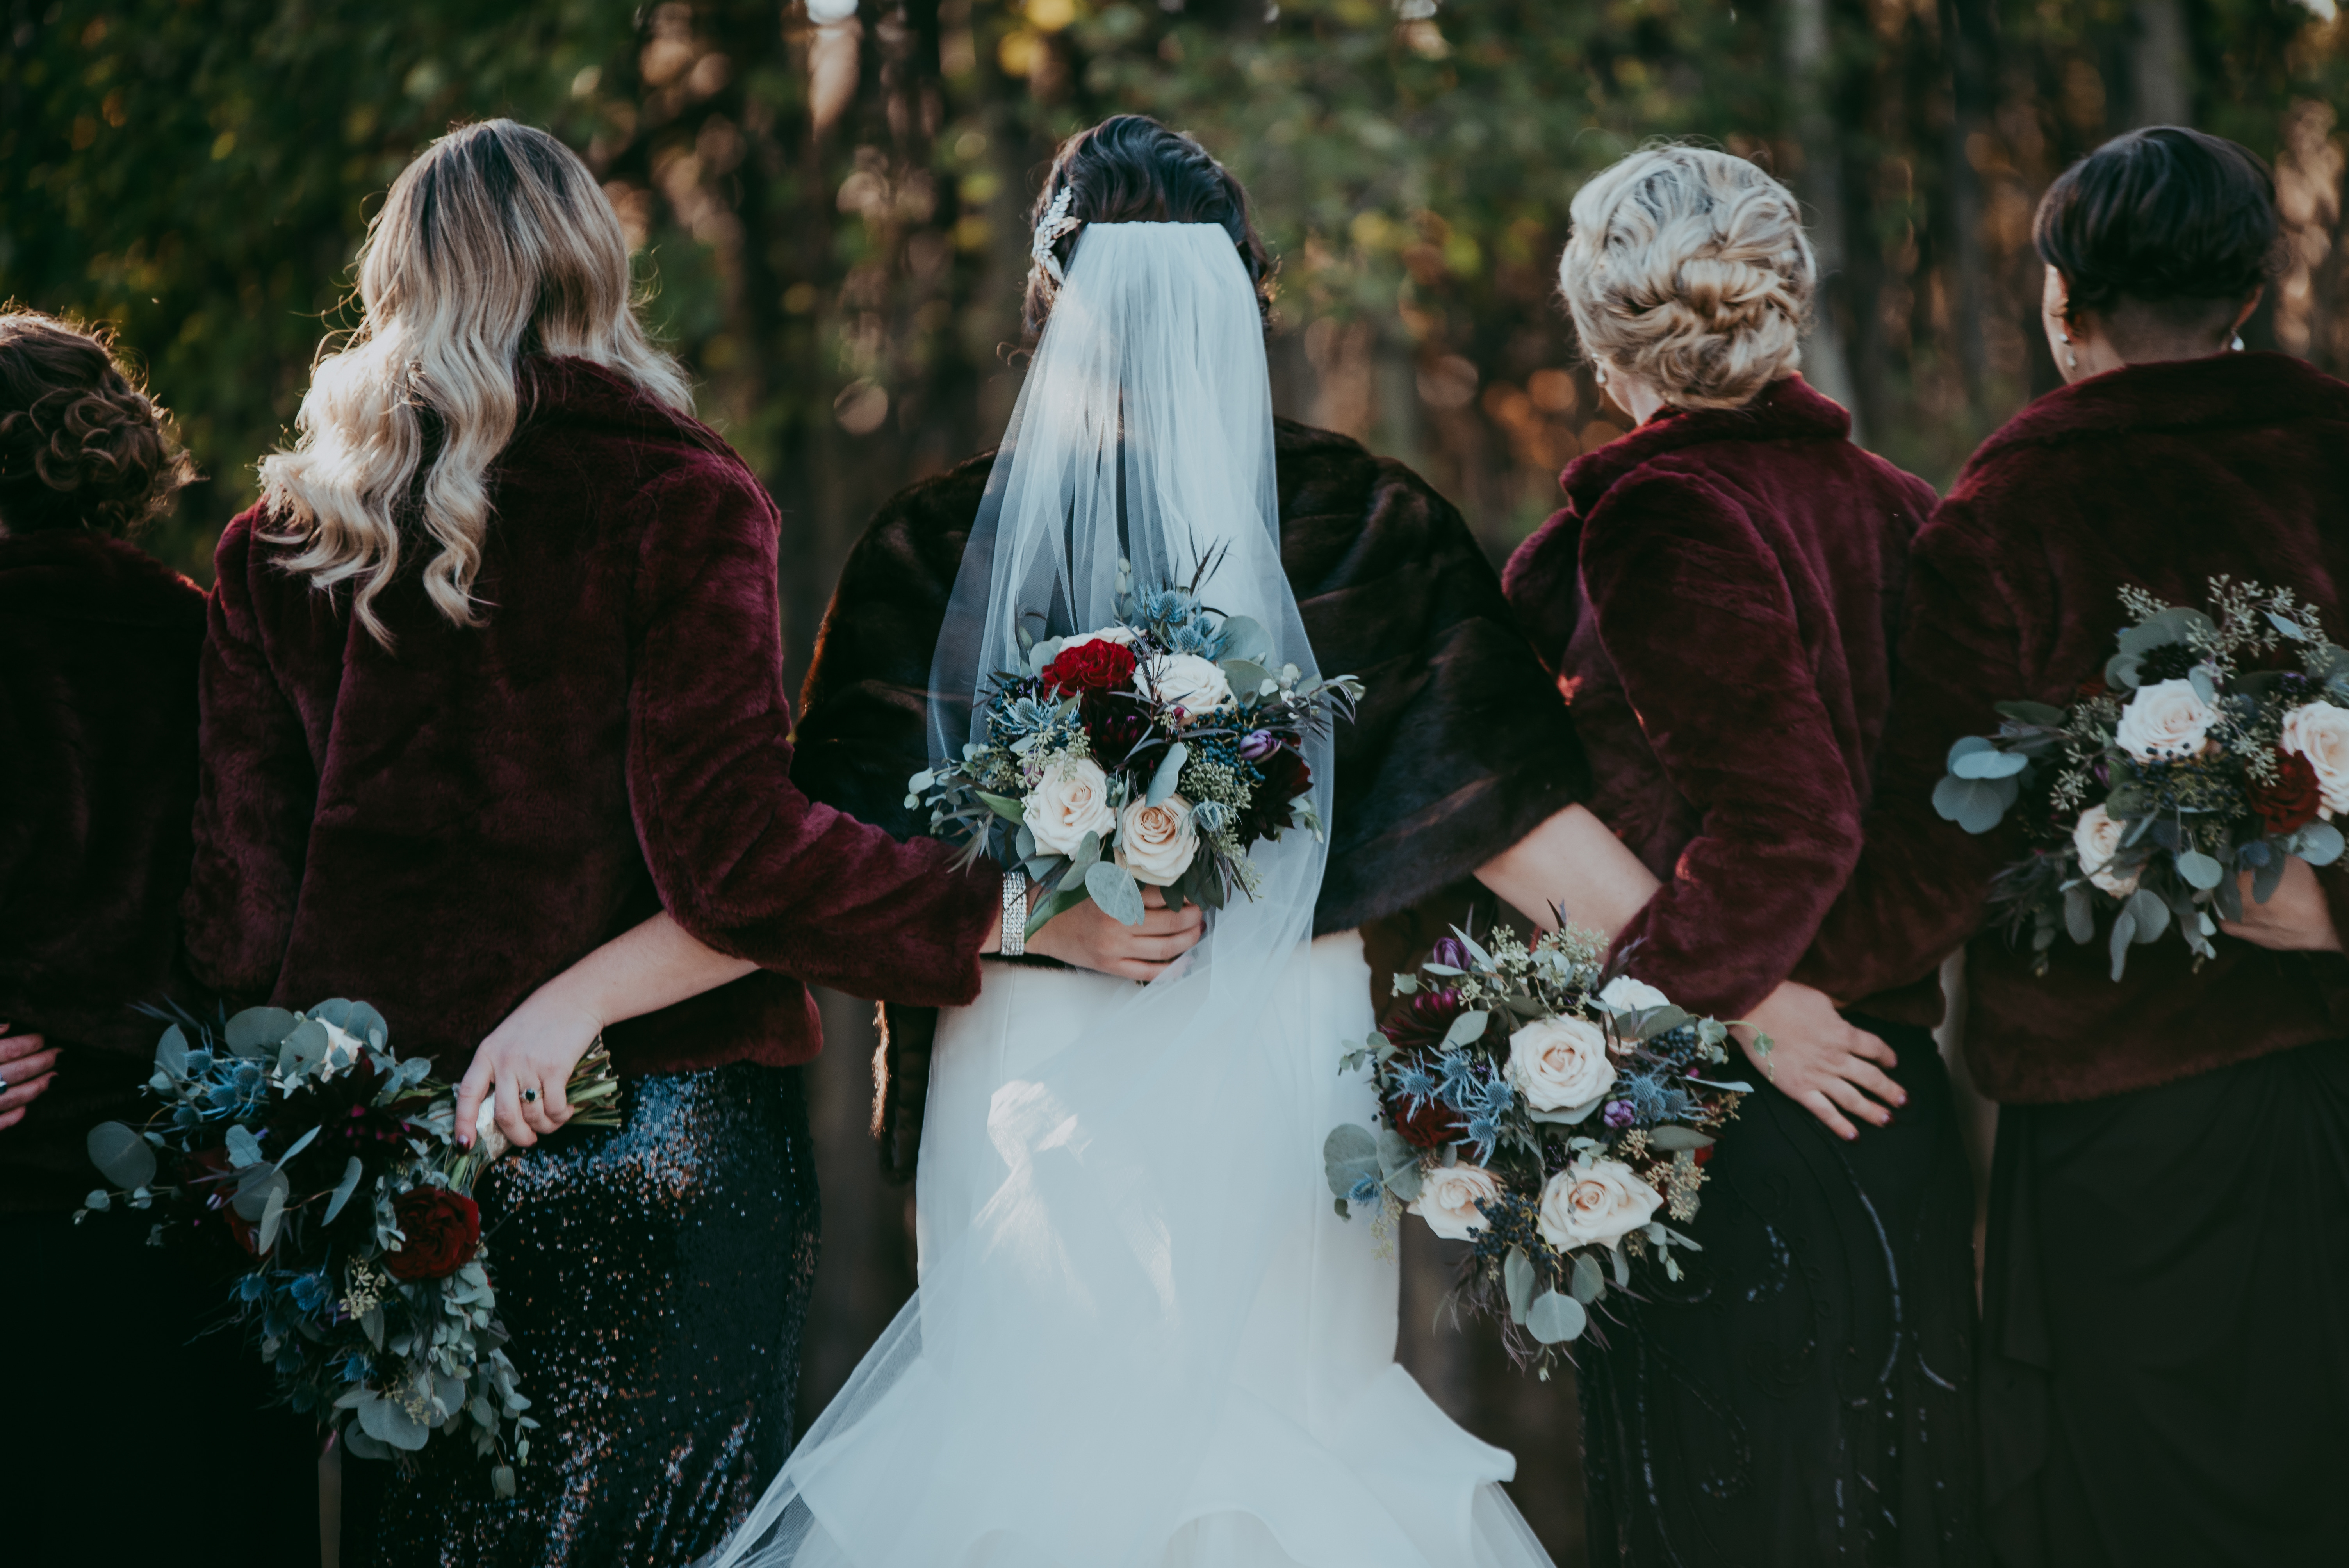 Fall bridal party picture from behind with fur coats and black sequin dresses bouquets with red roses quicksand roses eryngium and mixed eucalyptus retro bridal party